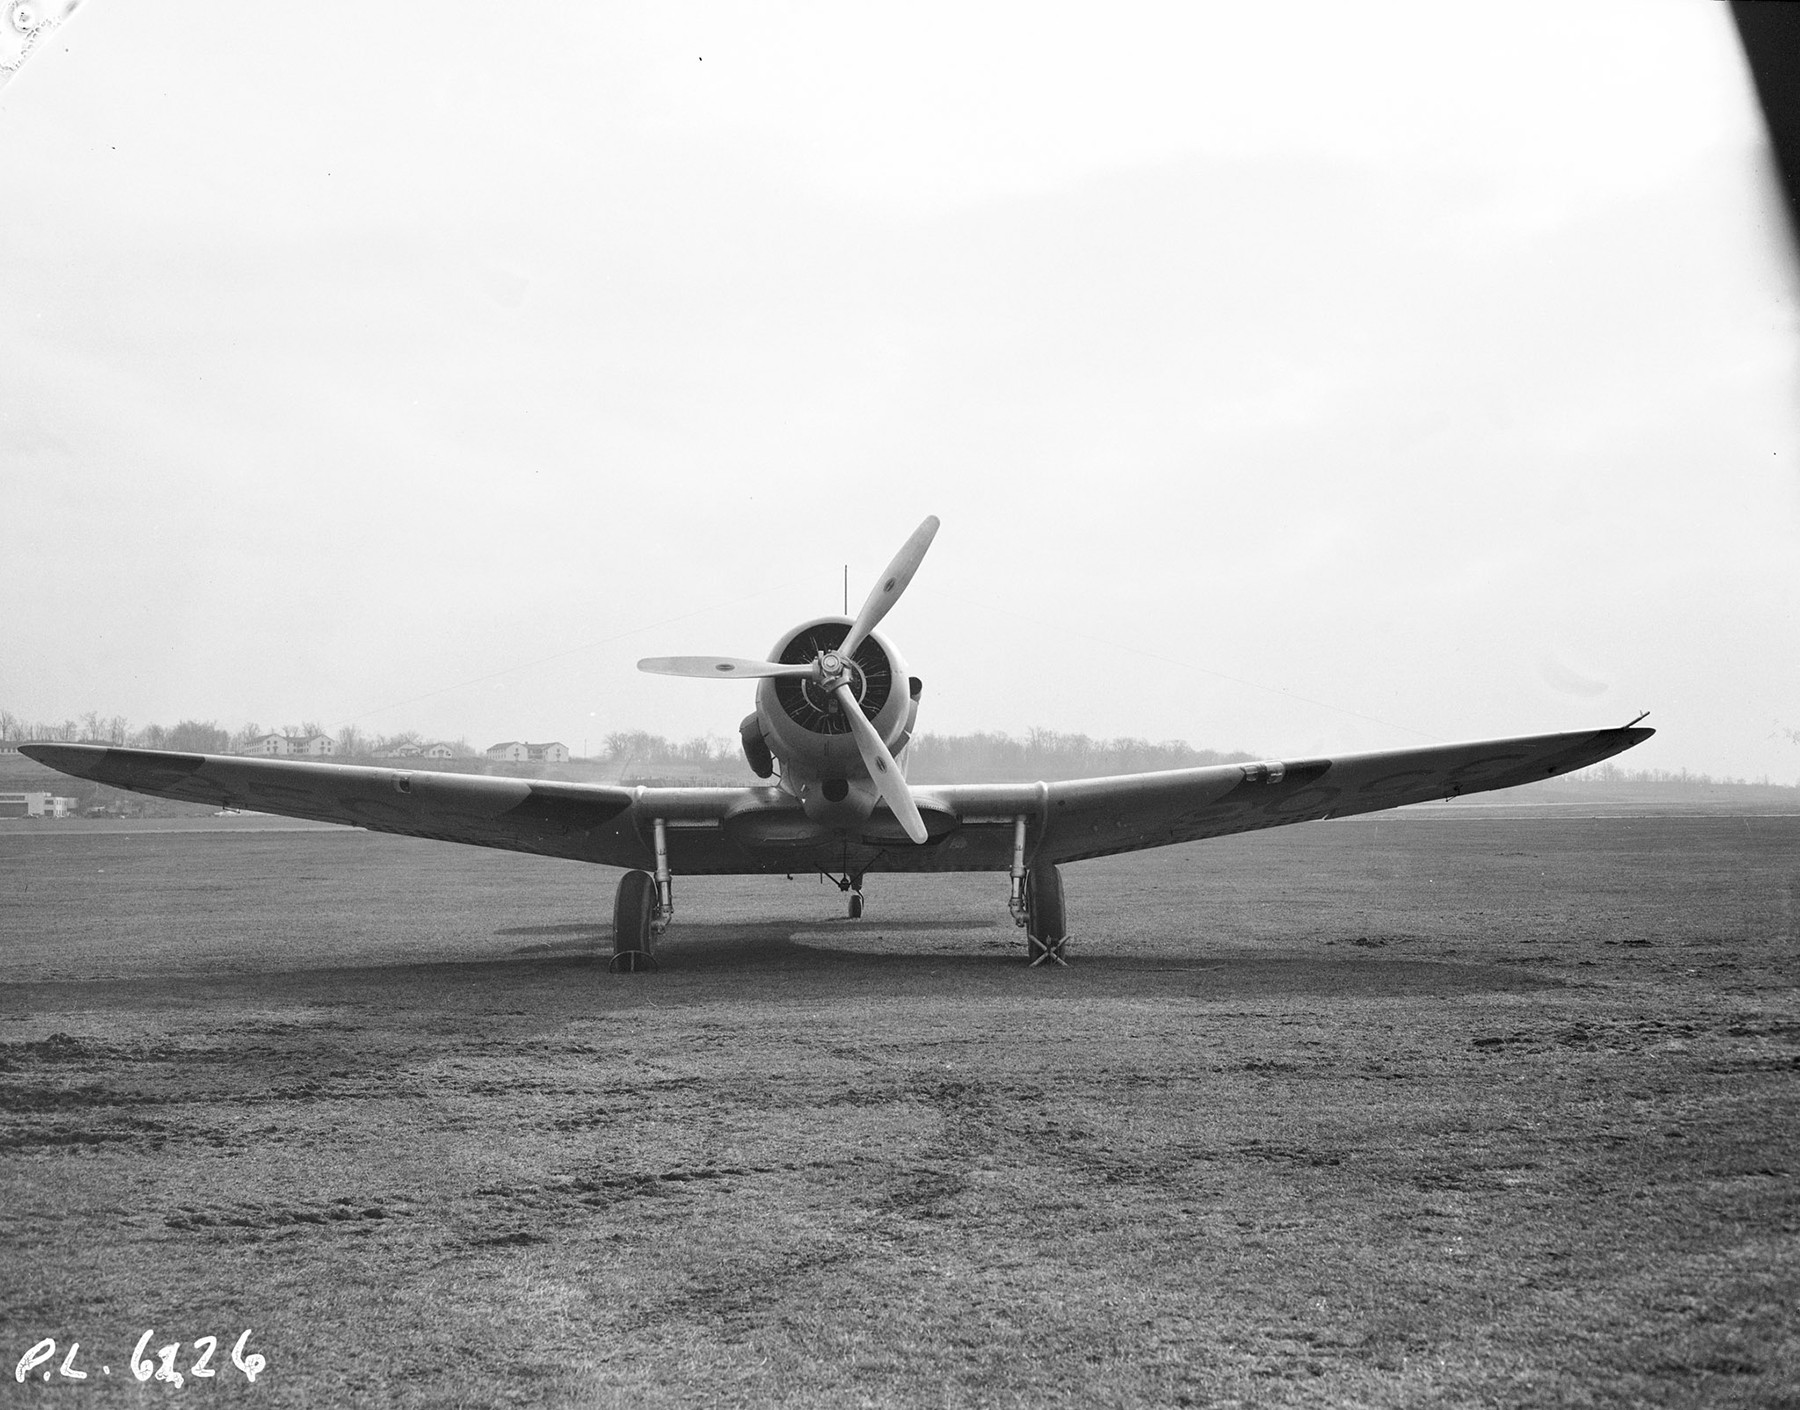 A front view of Northrop Nomad aircraft No. 3508, taken November 20, 1941. PHOTO: PL-6226, DND Archives